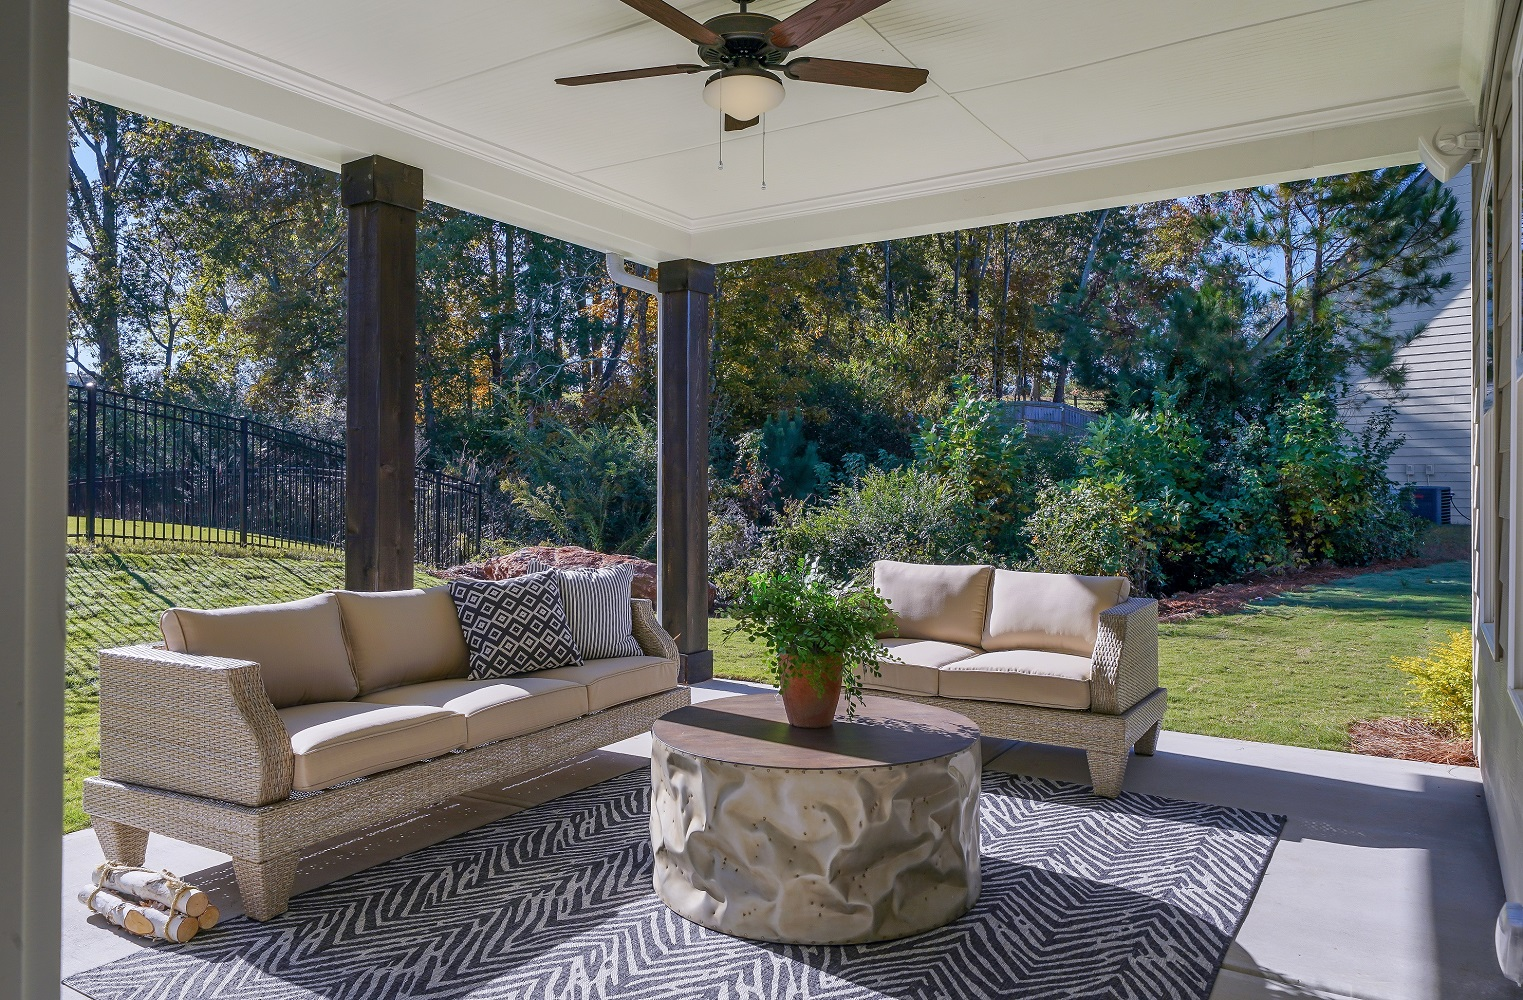 outdoor living at the new model home in Cumming